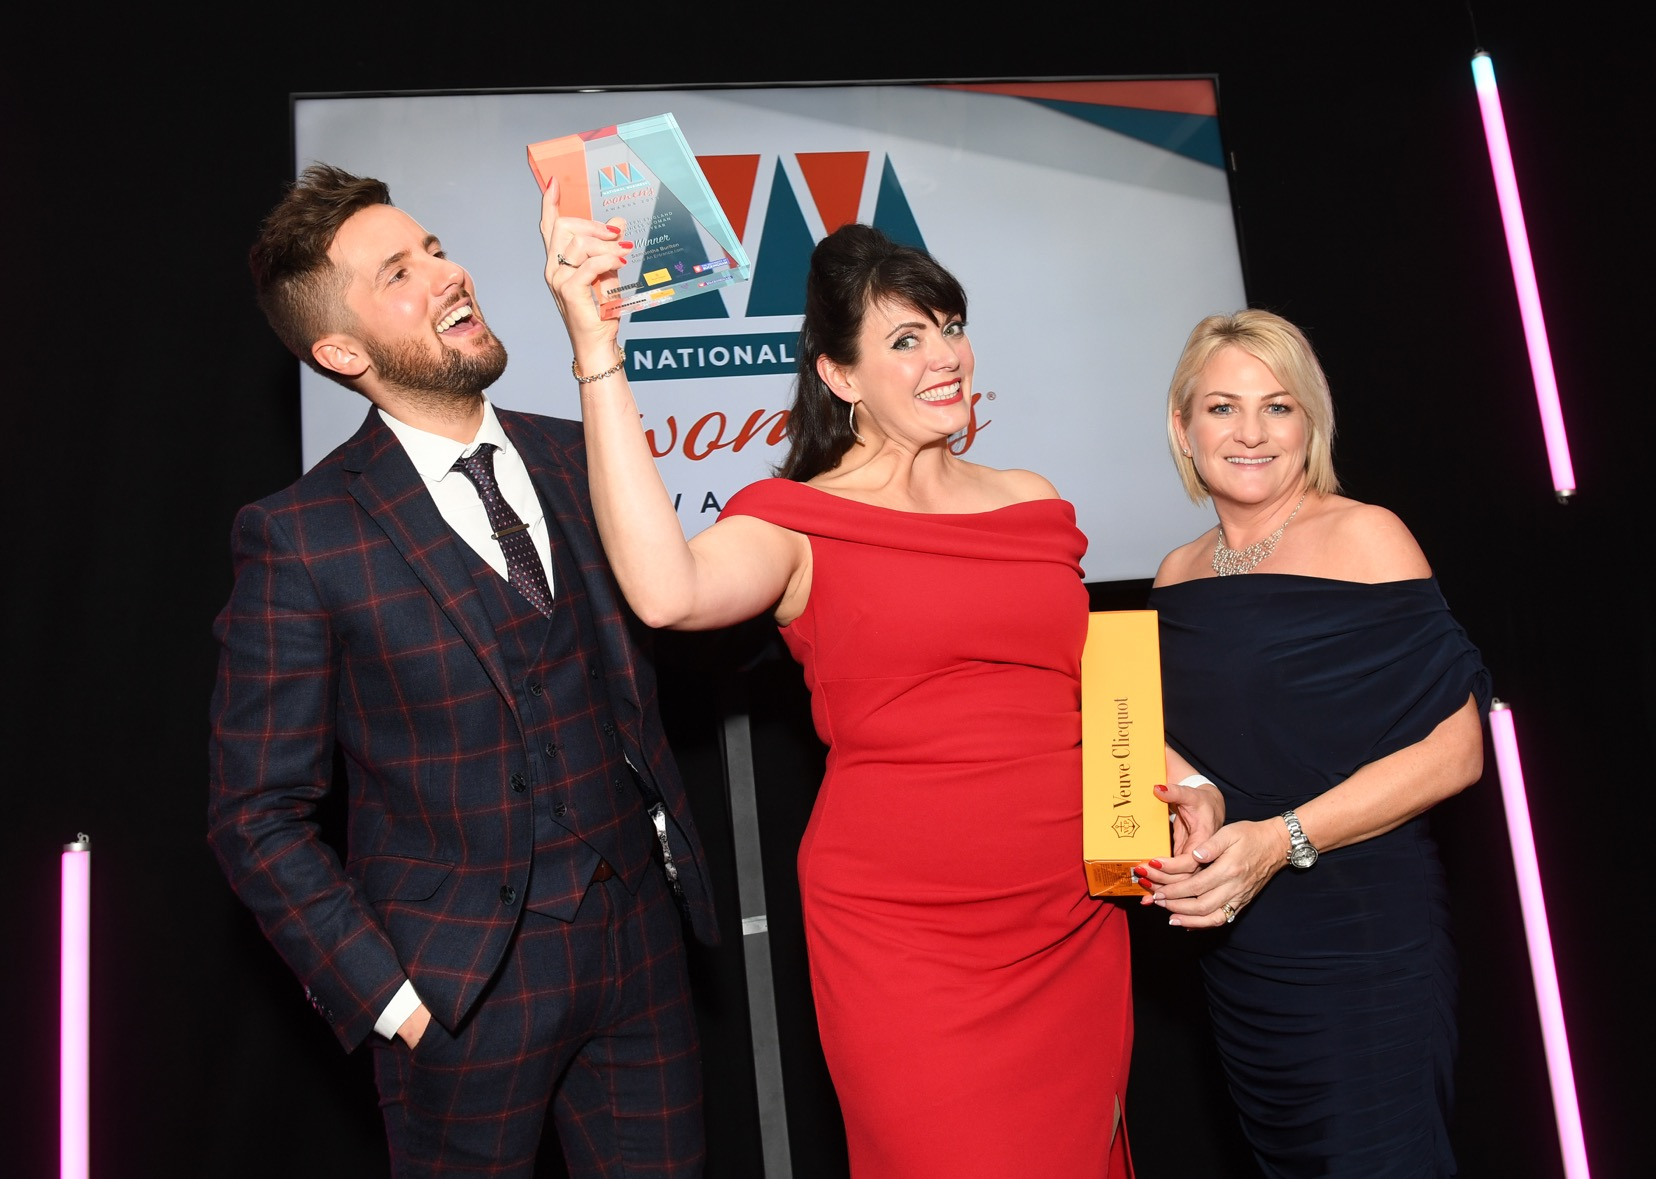 Sam Burlton - delighted to be presented with the Northern England Business Woman of the Year Award